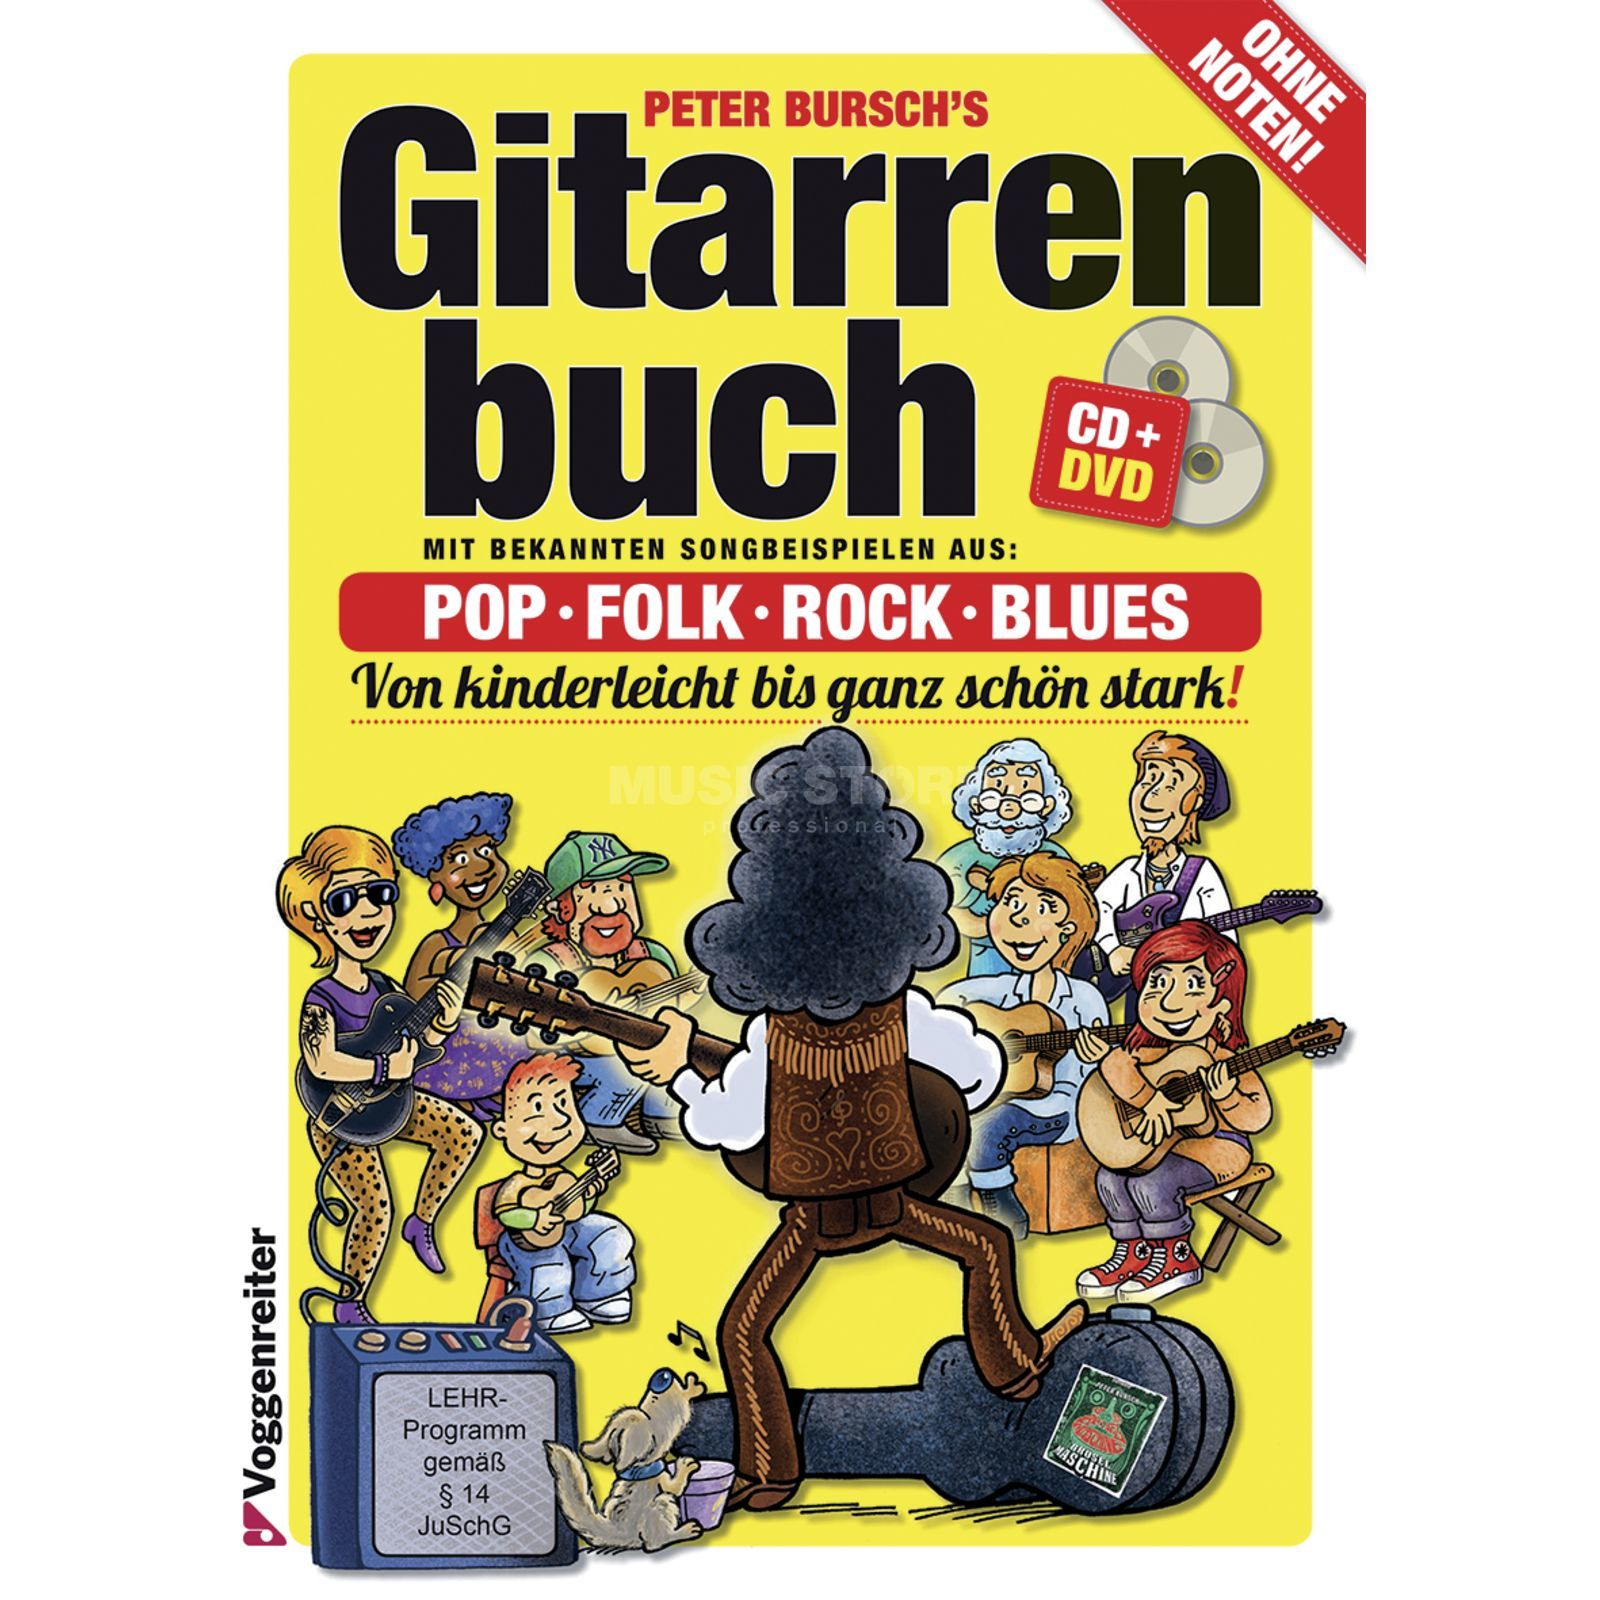 Peter bursch gitarrenbuch cd download: peter bursch. Peter bursch.